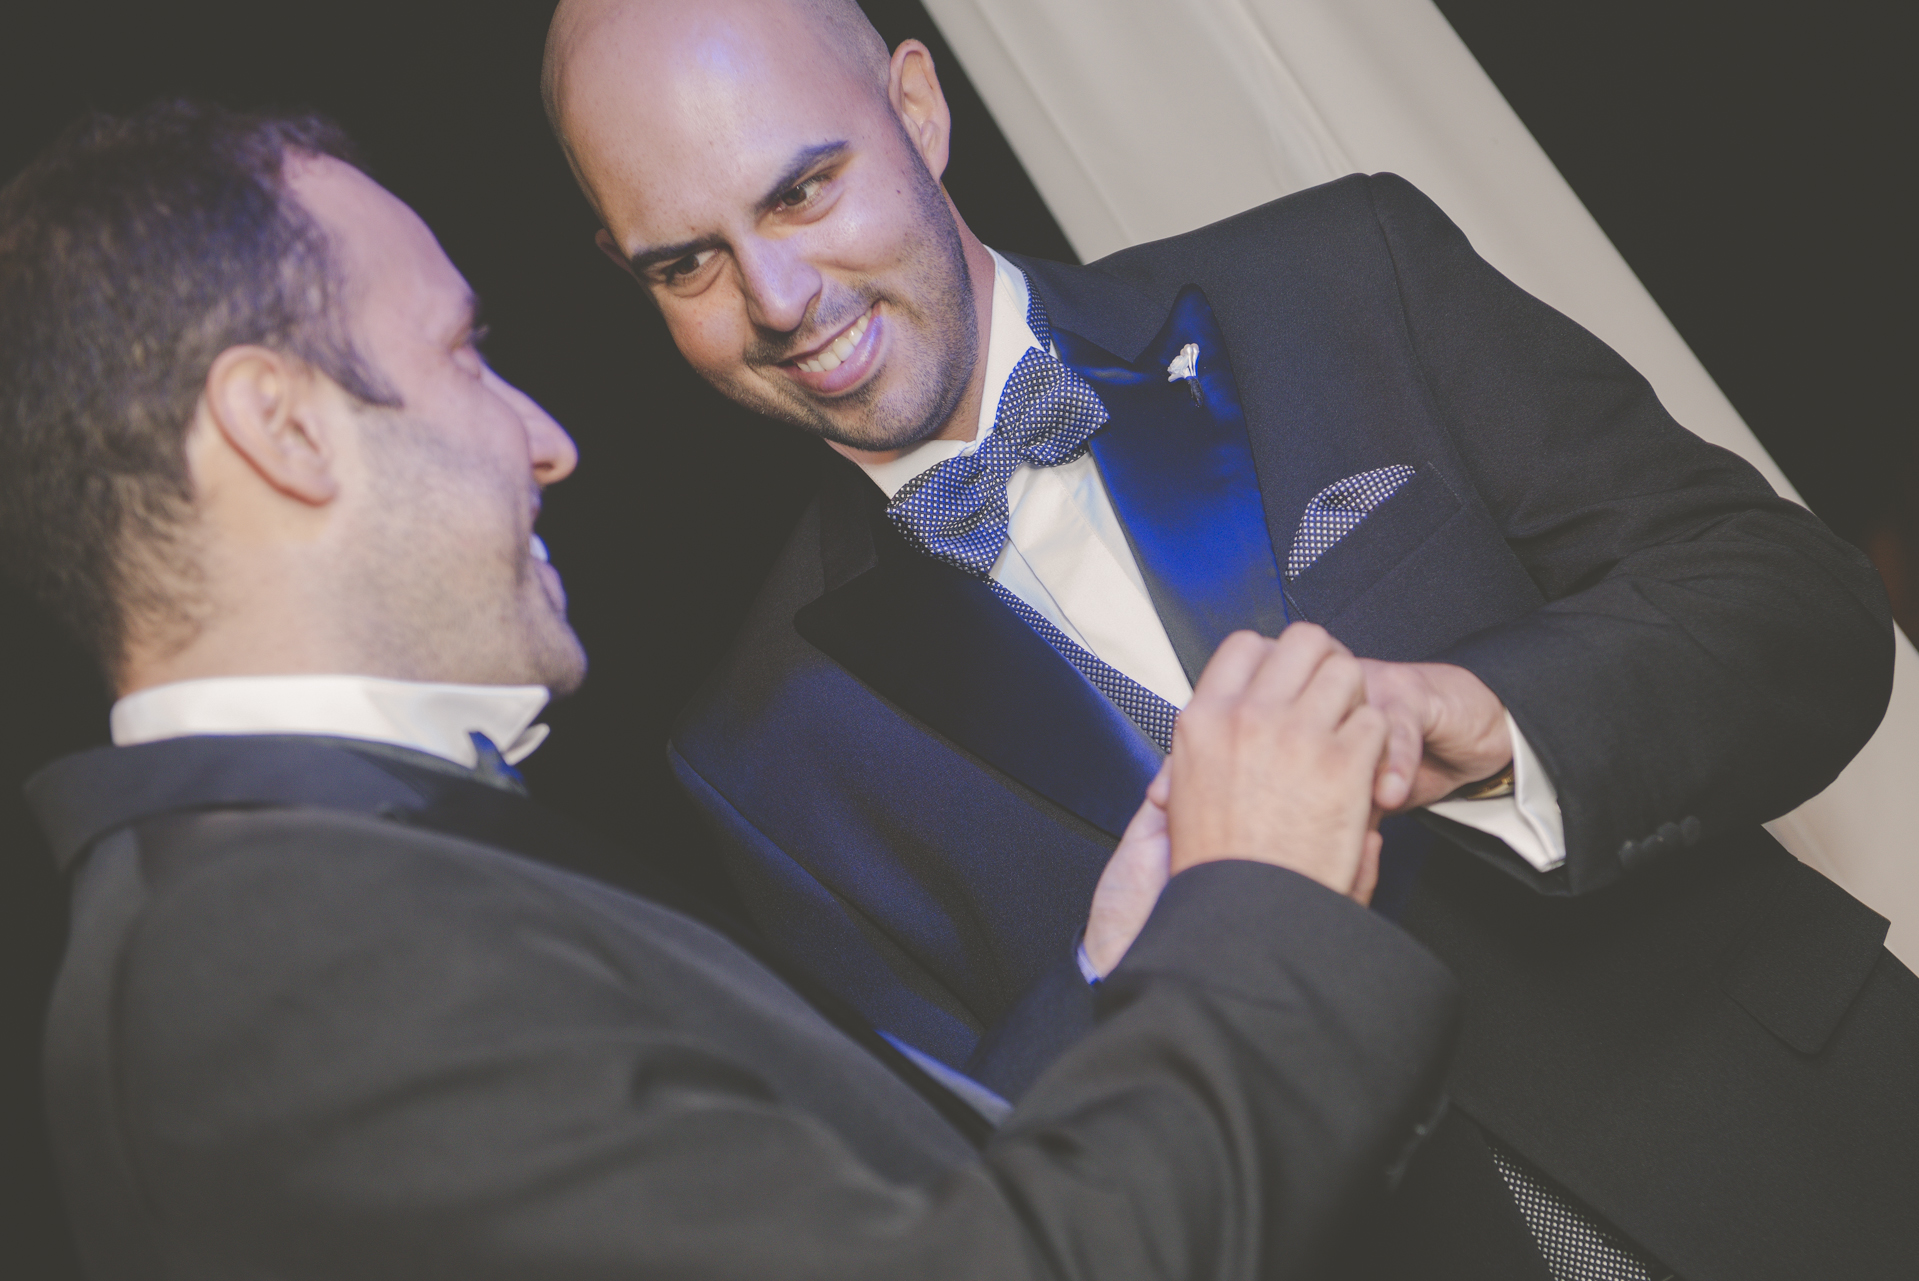 gay wedding ceremony photography, fotografia ceremonia civil boda gay